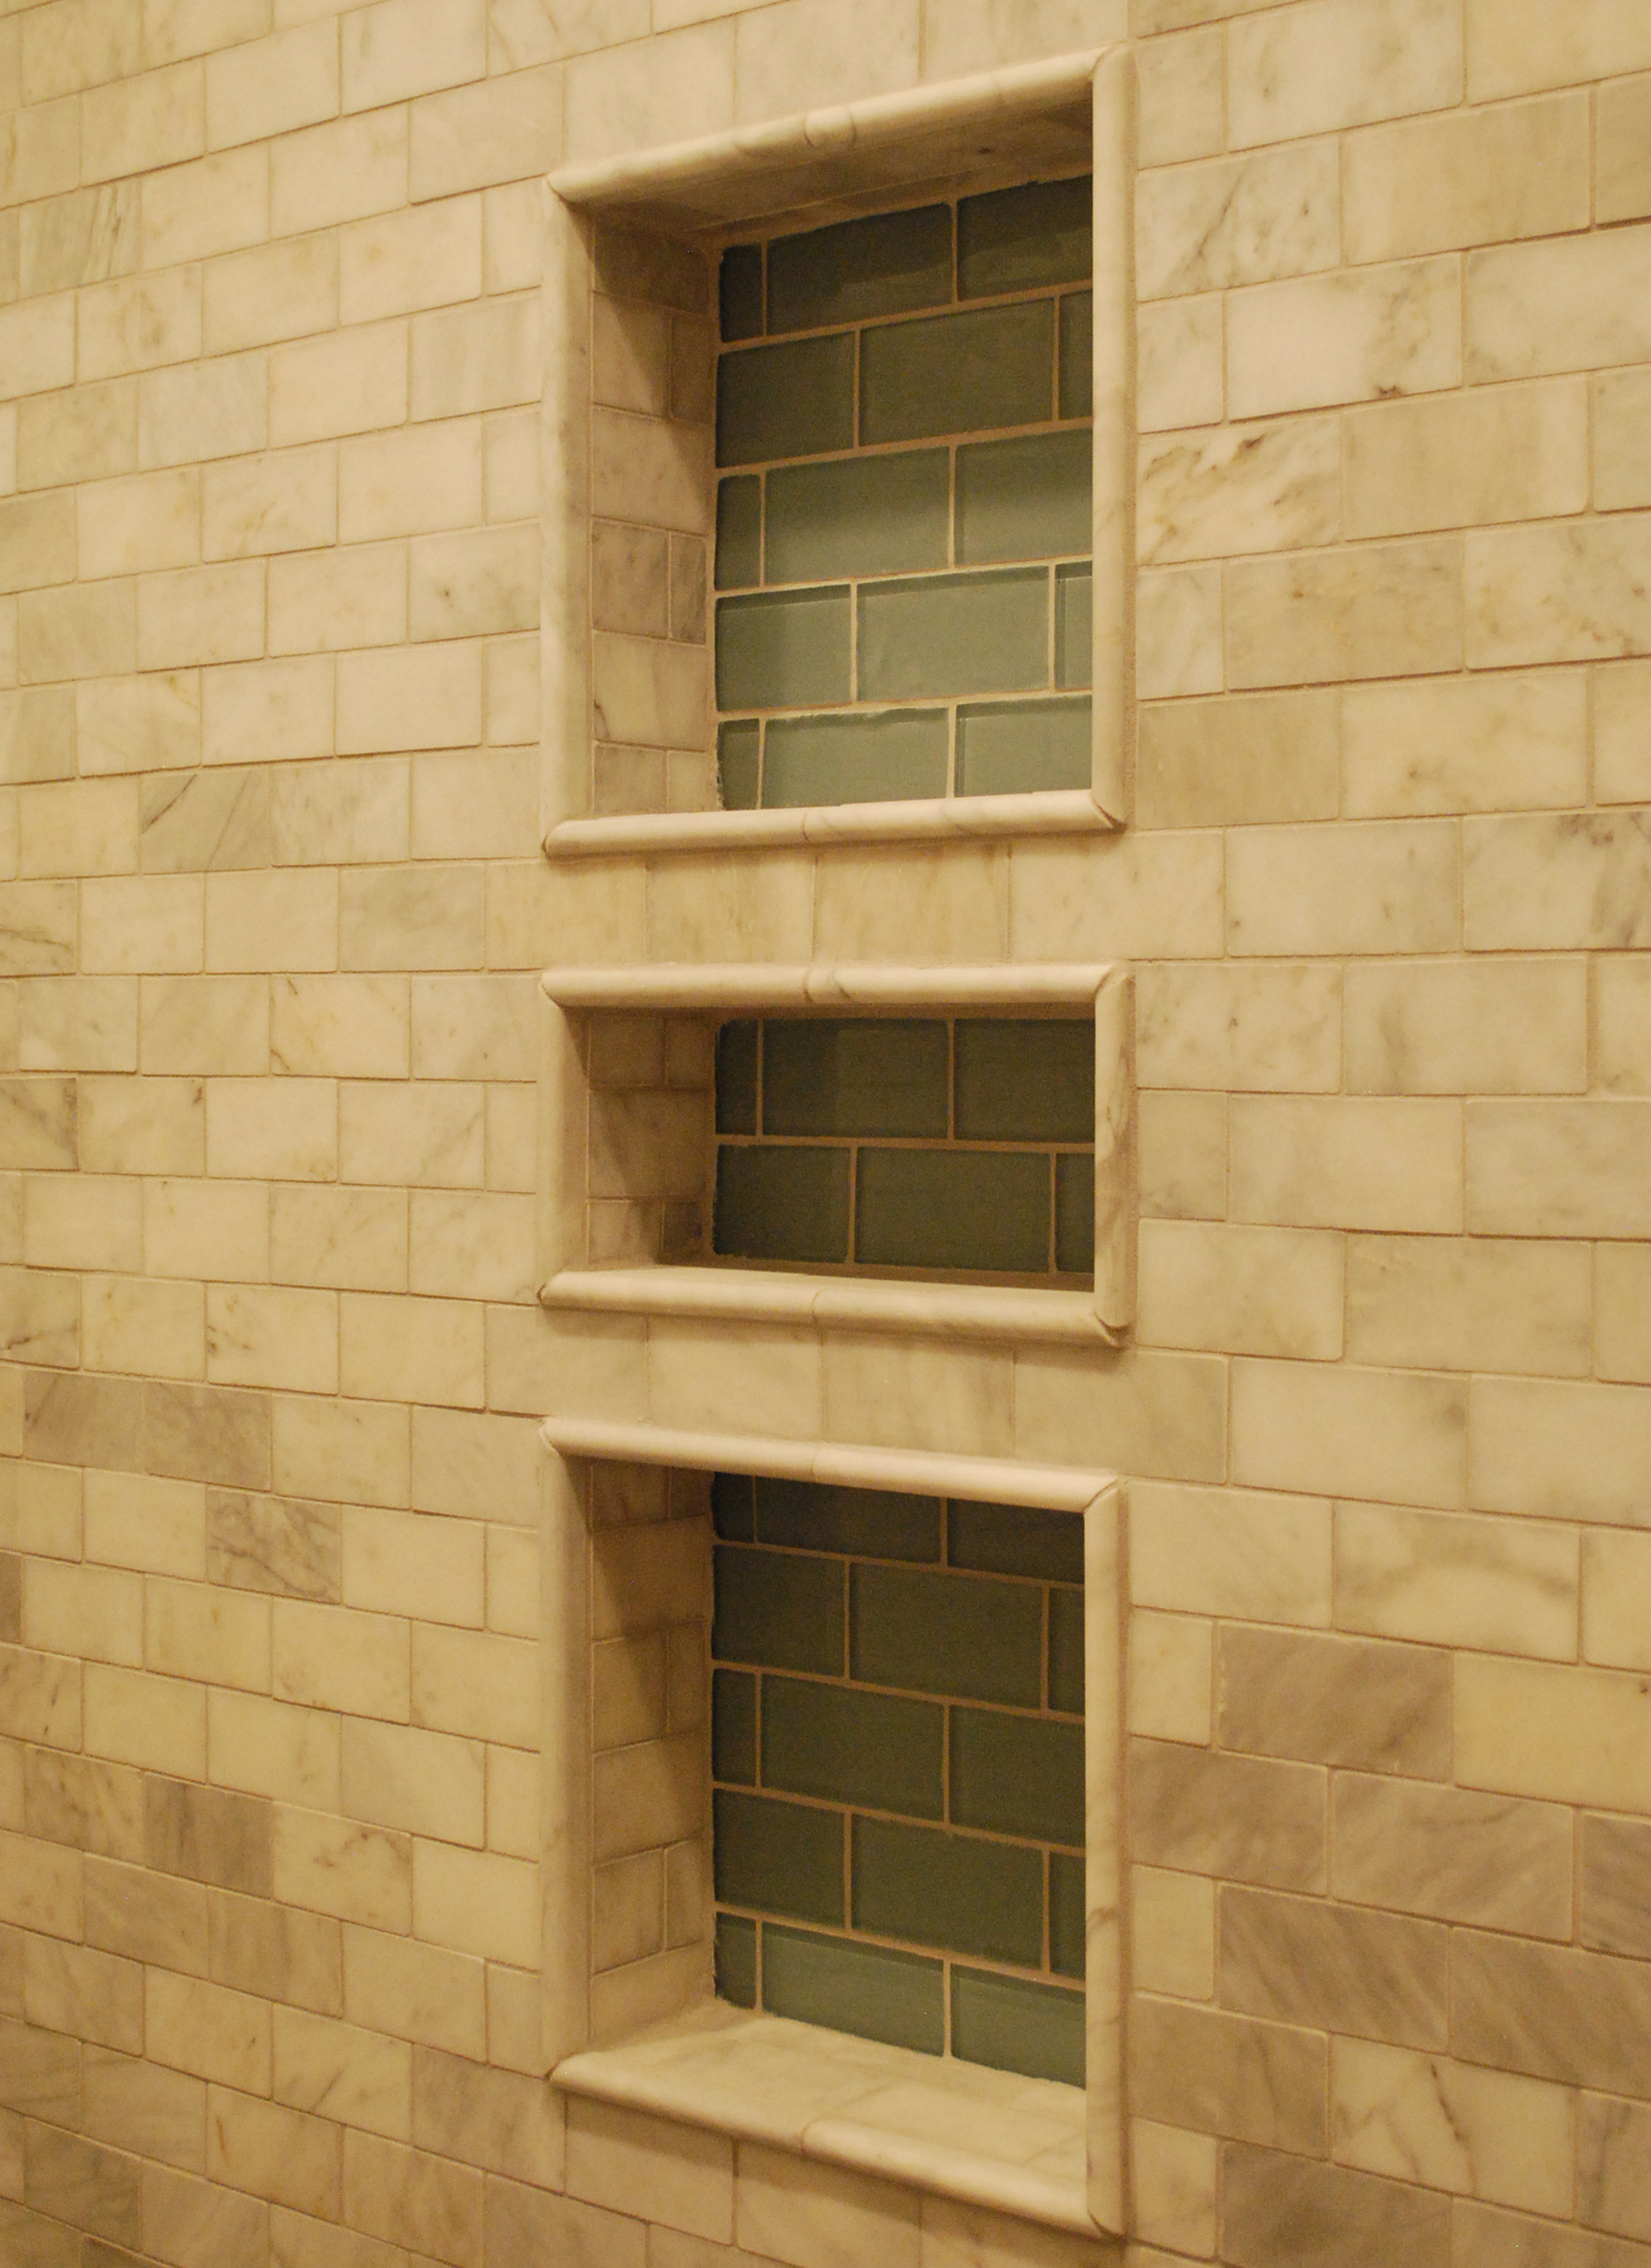 shower niche plaza.jpg